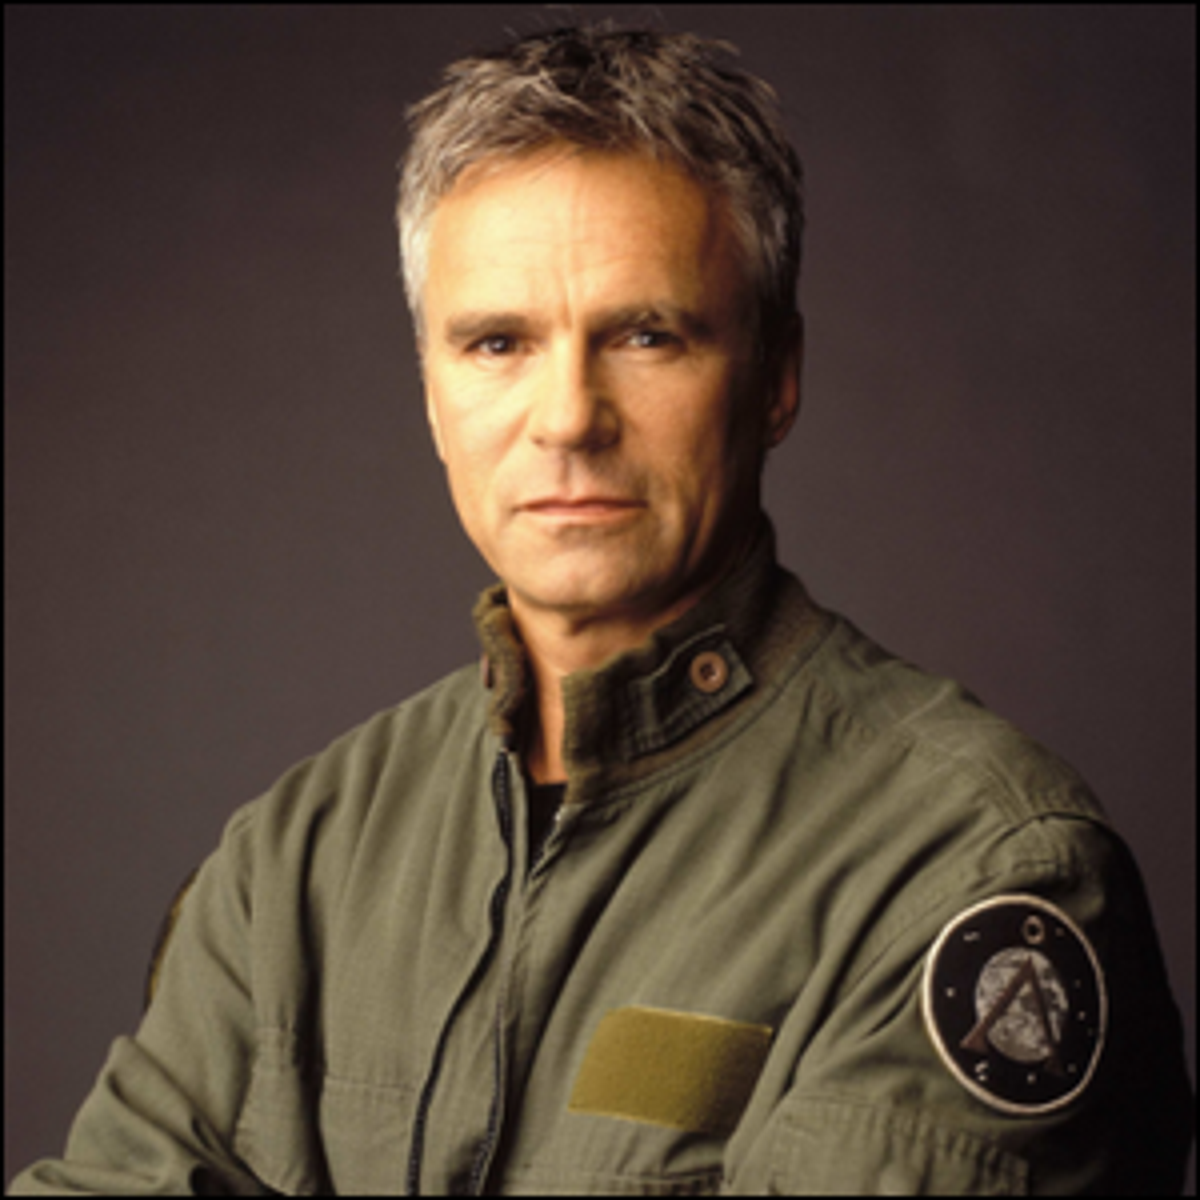 Colonel Jack O'Neill as portrayed by Richard Dean Anderson.